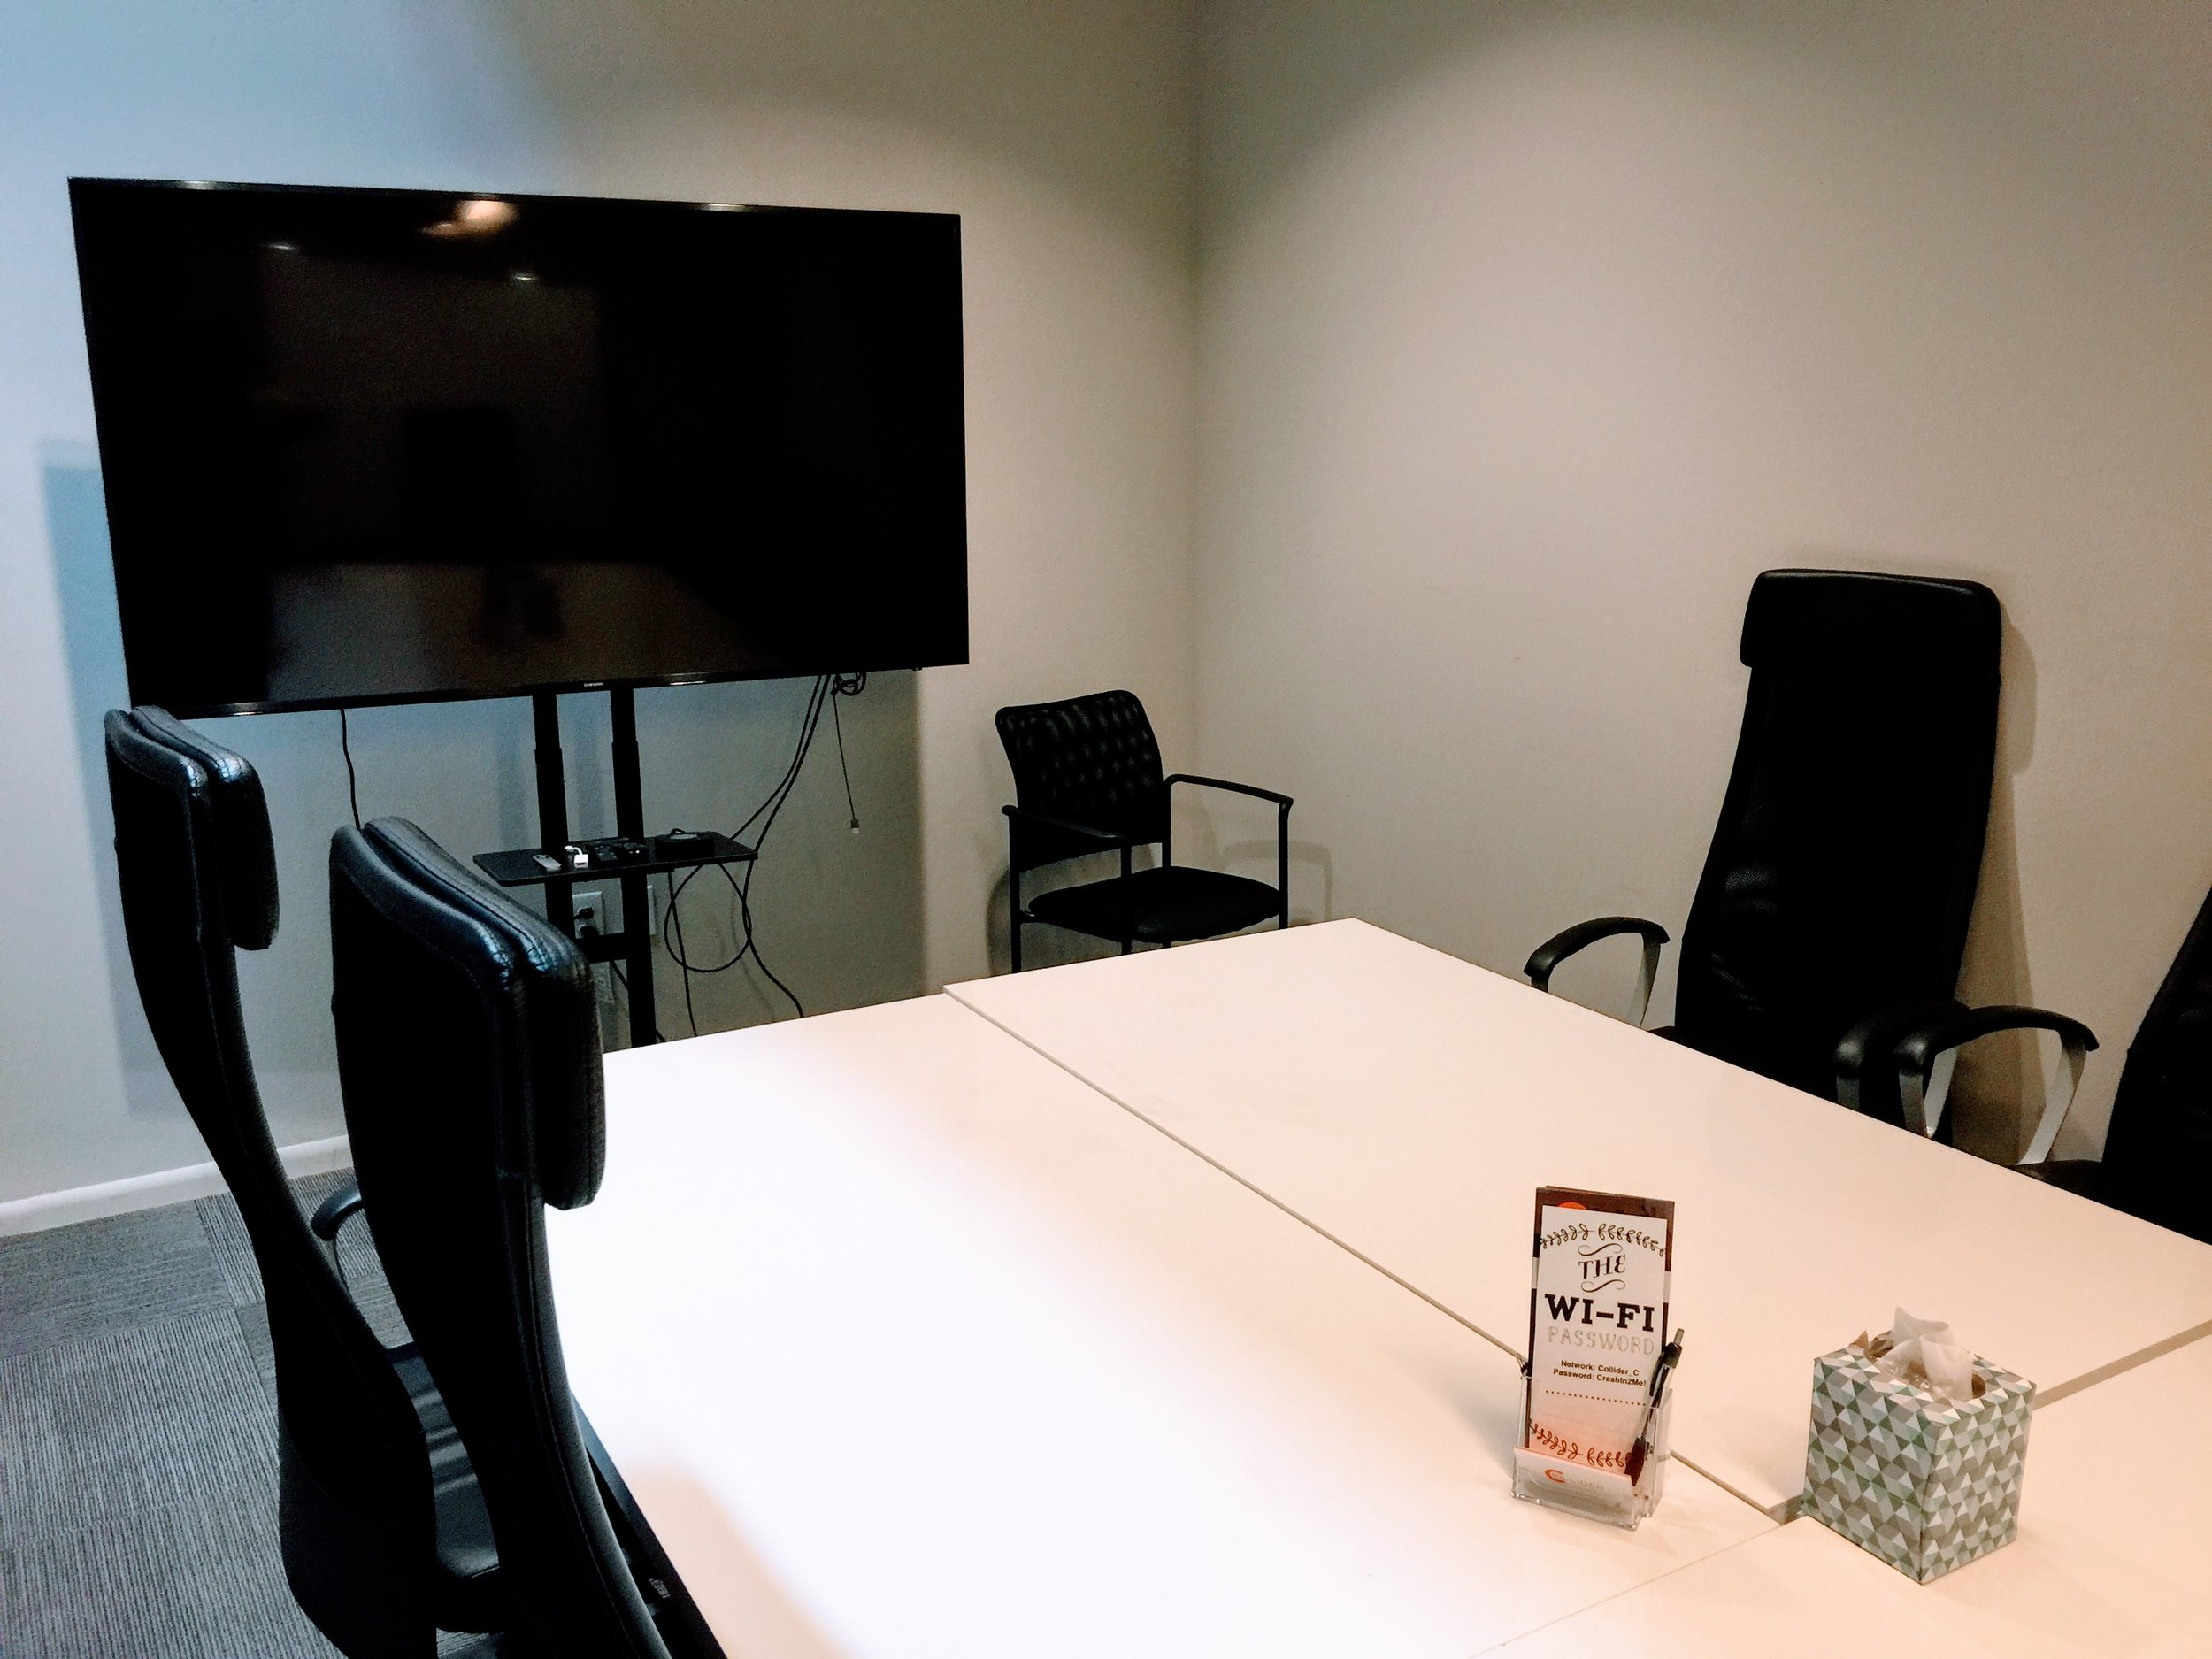 Large Conference Room Rental - $50/hour• Room accommodates up to 12 people• Large HD TV for presentations• Audio and video conferencing equipment available